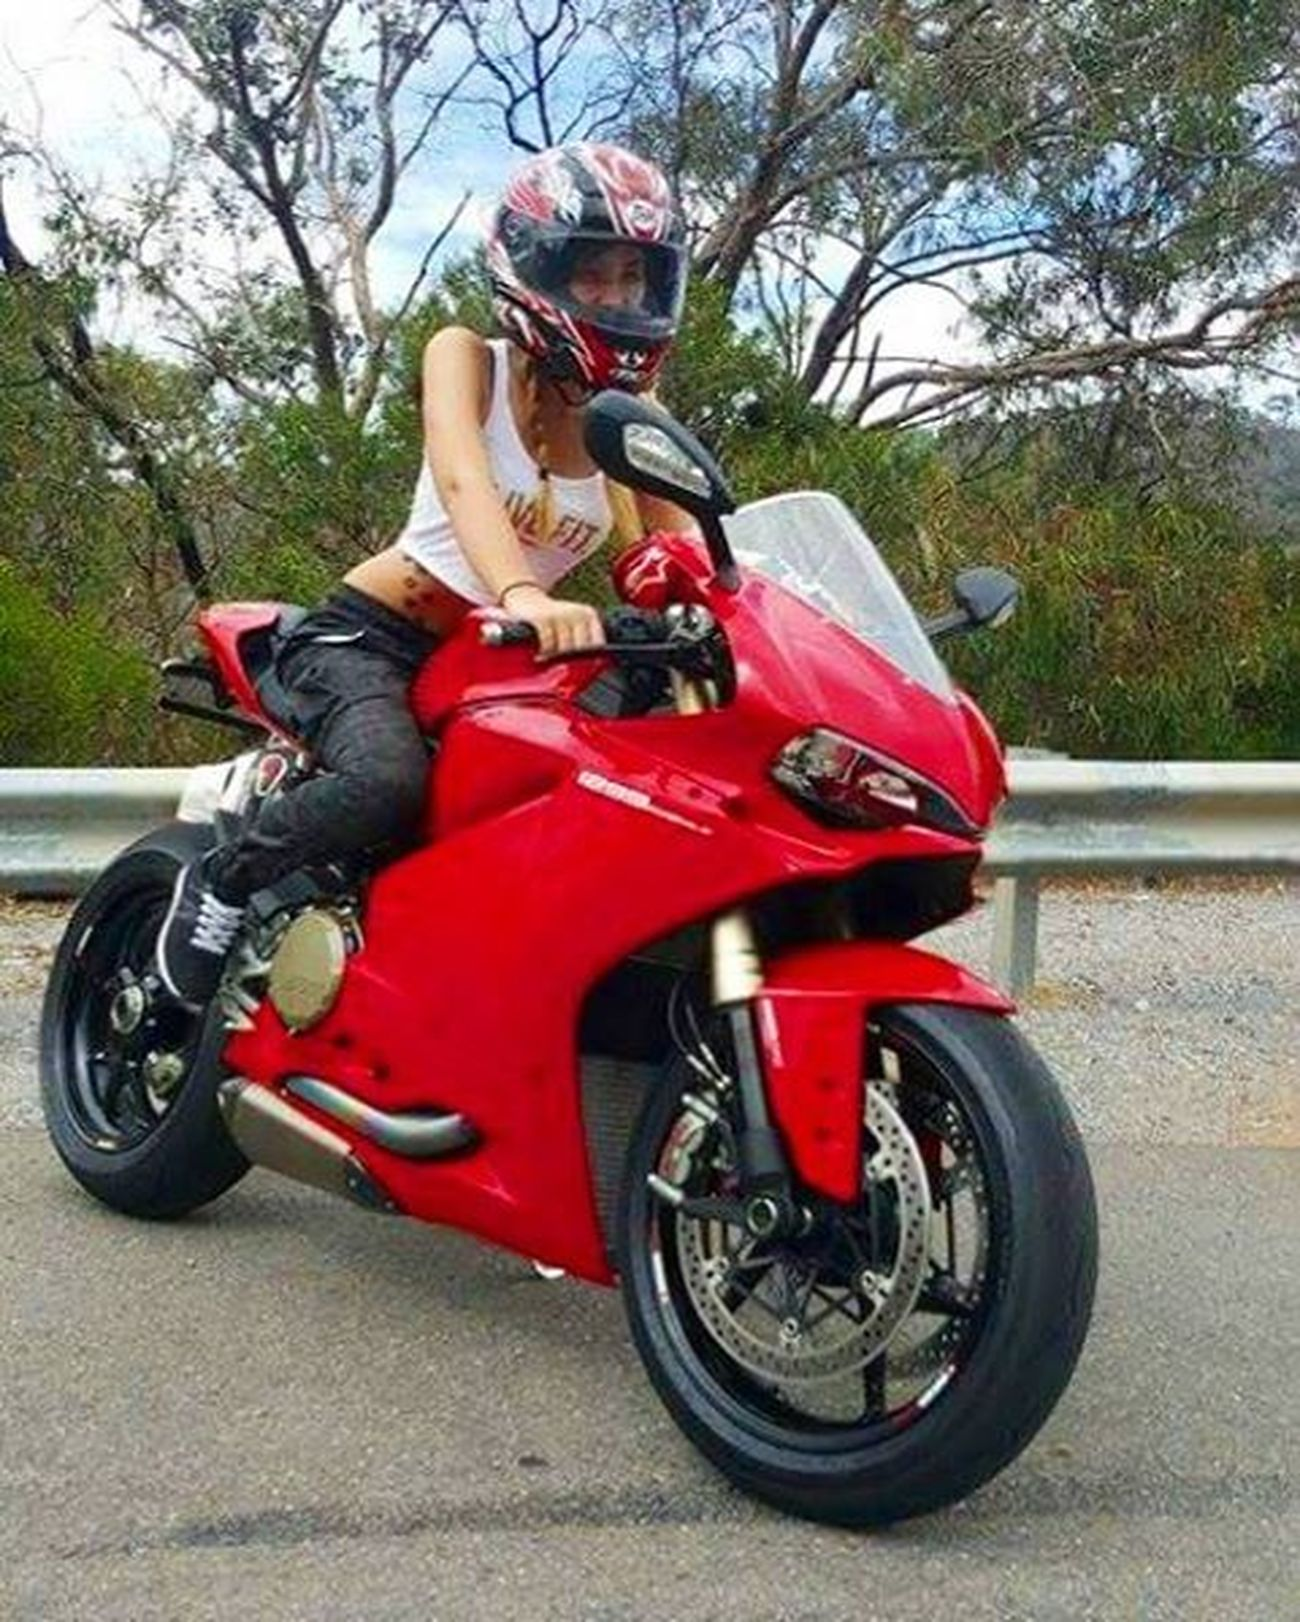 Took this beast for a bit of a spin today. Love me some HP! Ducati 1299 Red Gorgeroad HP Vtwin Bikergirlsofinstagram Bikeswithoutlimits Riderich Gopro Rollingontwo Womanwhoride Bikelyf Bikelife Motorcycle Bikes Motorbikes Yoshimura Exhausts Eatsleepshiftrepeat Fitgirls Fit CropTop Modelmaterial Twowheelsandheels moto_wikki bikedocfeatures pimpstarlife camo saaraazh